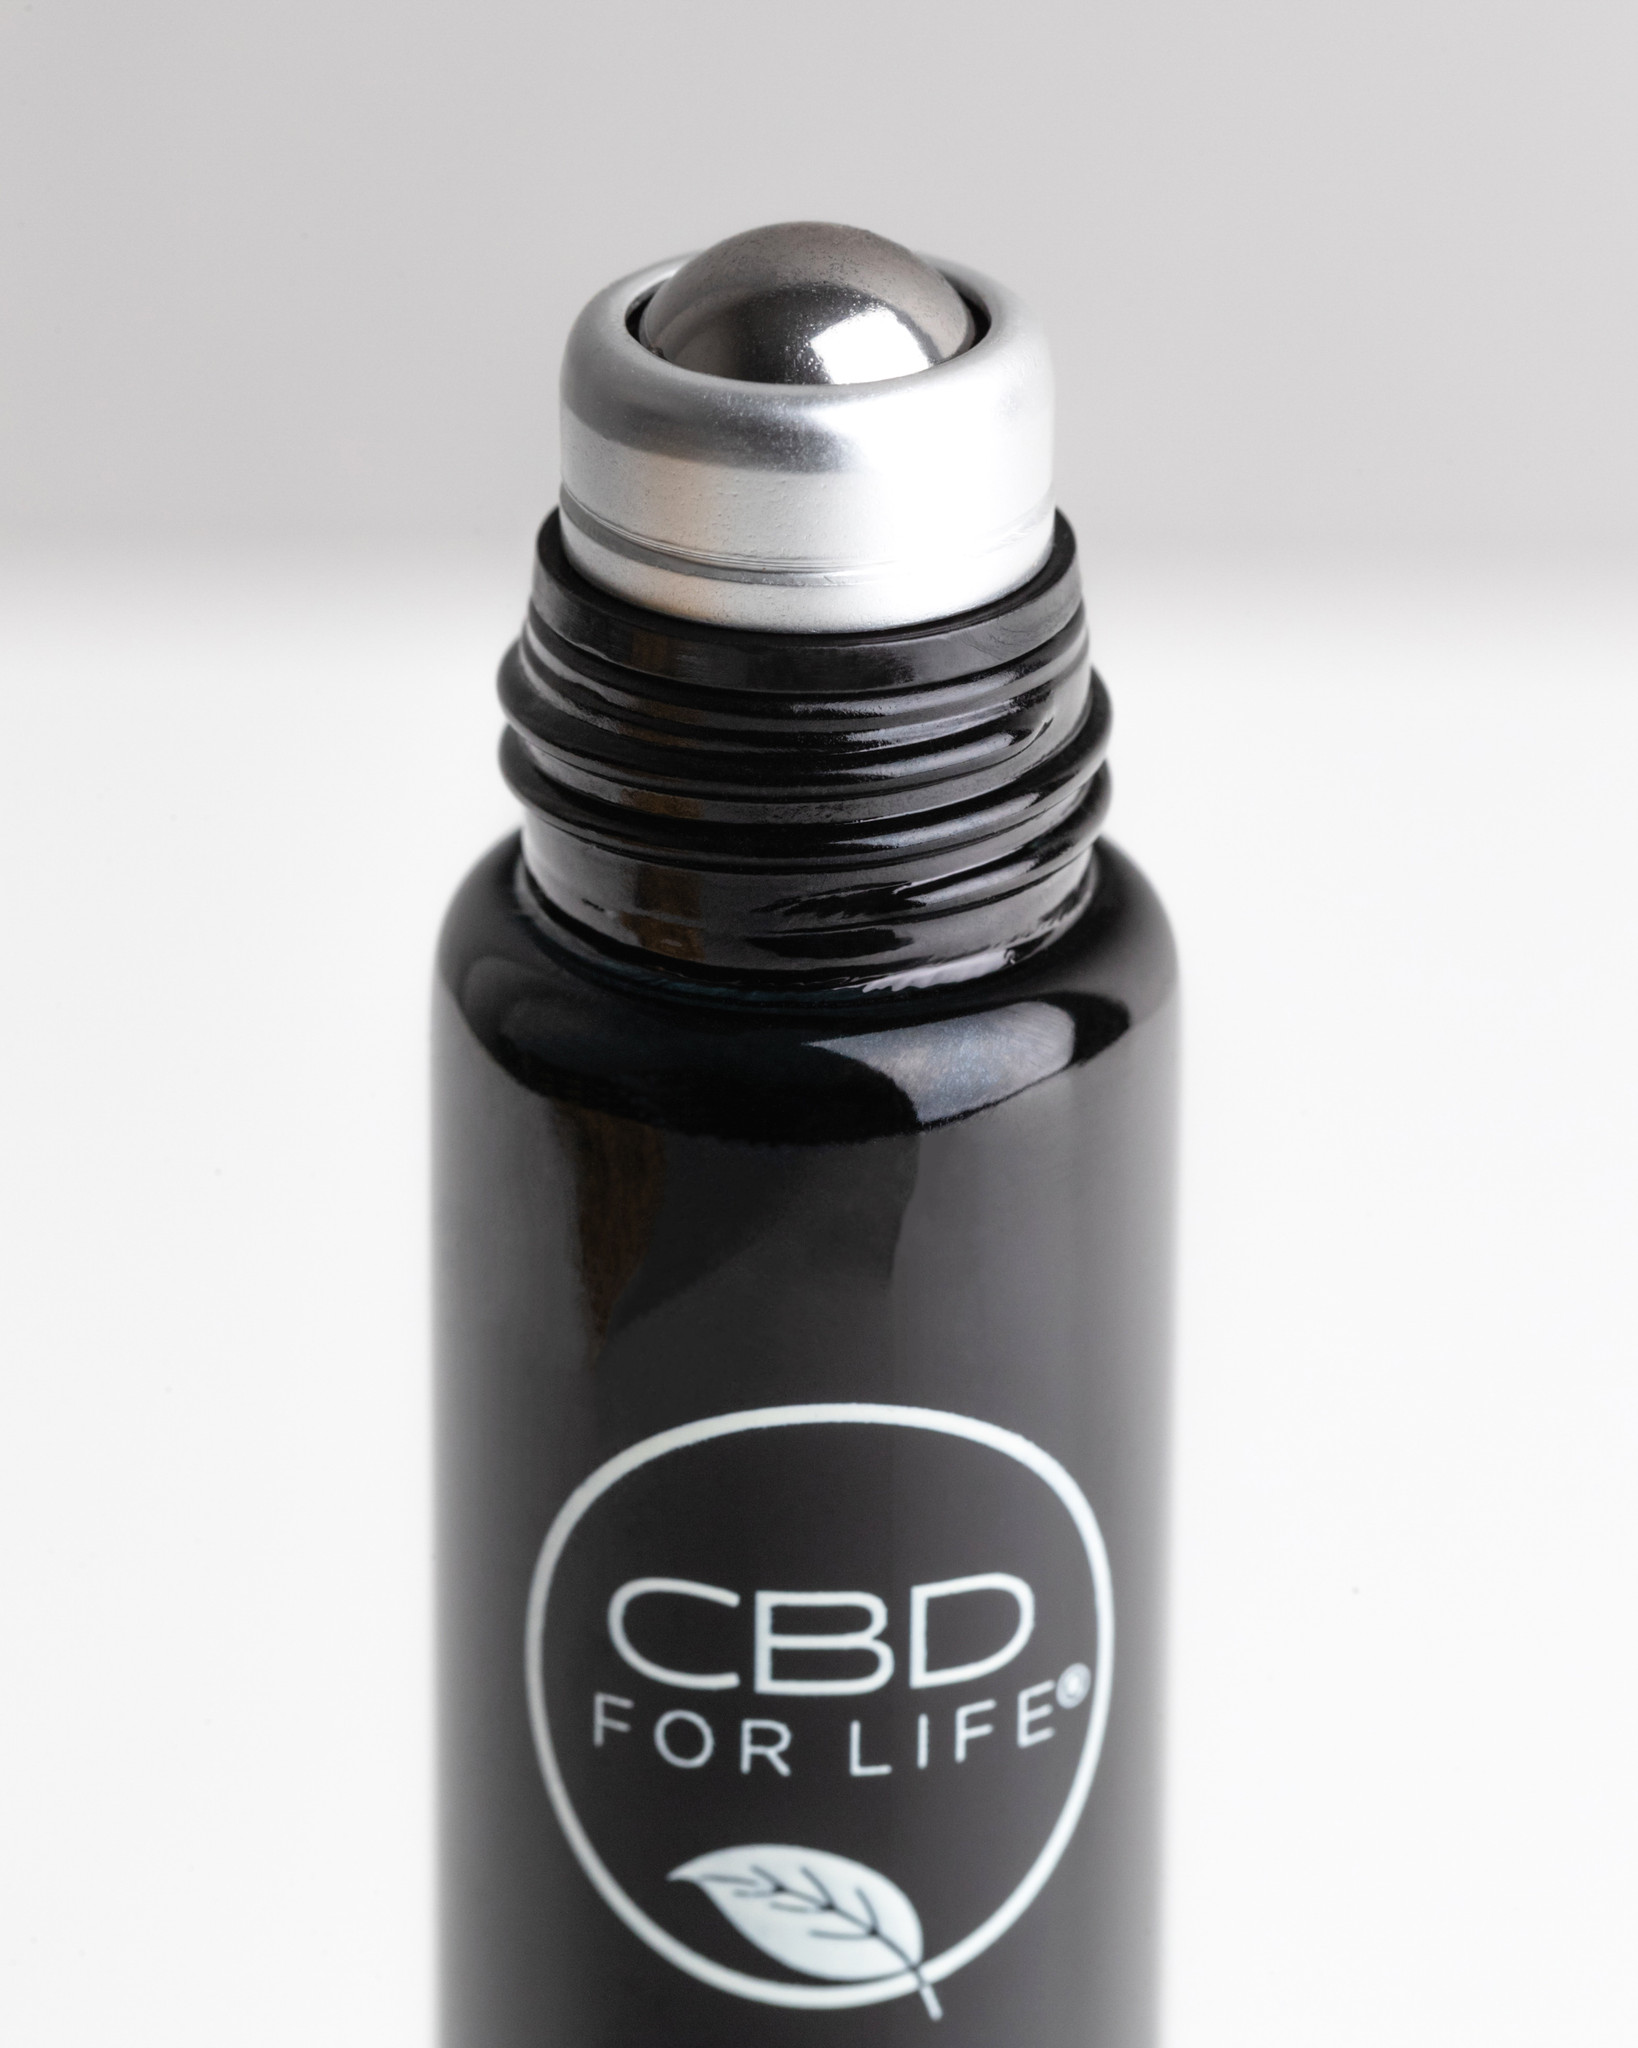 Our CBD Oil roll-on applies clear, absorbs quickly and delivers pinpointed, targeted results. Roll it anywhere—over temples, knees, fingers or toes—for soothing comfort, on the spot. Our roll-on oil is a combination of CBD oil plus other beneficial oils, like coconut oil, hemp seed oil and jojoba oil, to name a few. You can roll our CBD oil roll-on up the back of your neck before bed to help with sleep, or roll it anywhere you feel discomfort. Consumers have reported CBD oil helps to alleviate pain, reduce tension and tightness, and induce a sense of calm. Our CBD roll-on oil is so convenient for on the go and travel. The CBD roll-on CBD oil uses a rollerball application so you can apply it anytime, anywhere. Toss one of our CBD roll-ons in your handbag, desk drawer, and keep a CBD roll-on on your nightstand. CBD is transforming wellness and self-care.